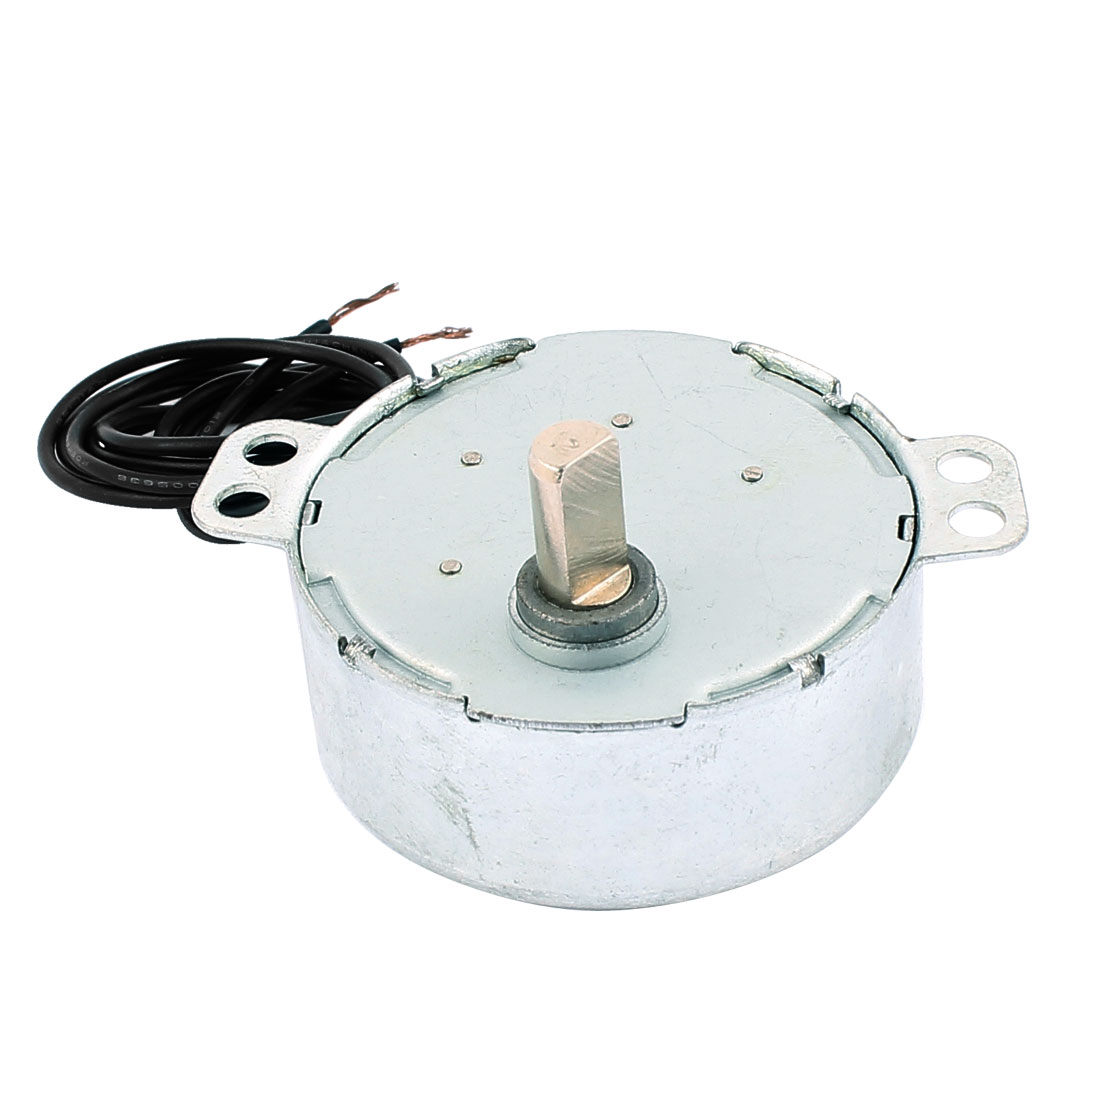 AC 220-240V CCW/CW 4W 50/60Hz Frequency 0.8-1RPM Micro Synchronous Motor